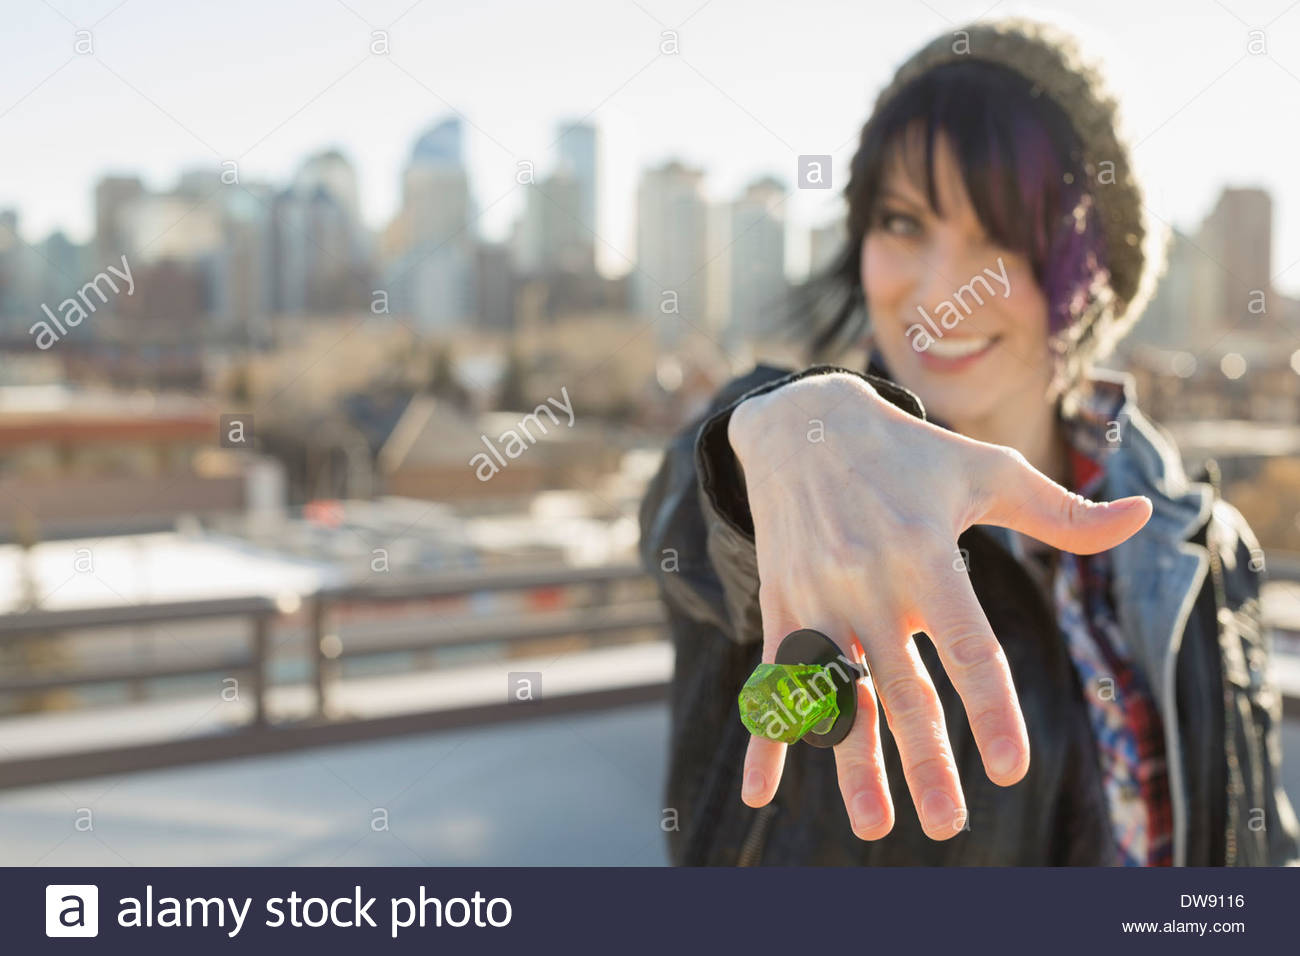 Smiling woman showing off candy ring Photo Stock